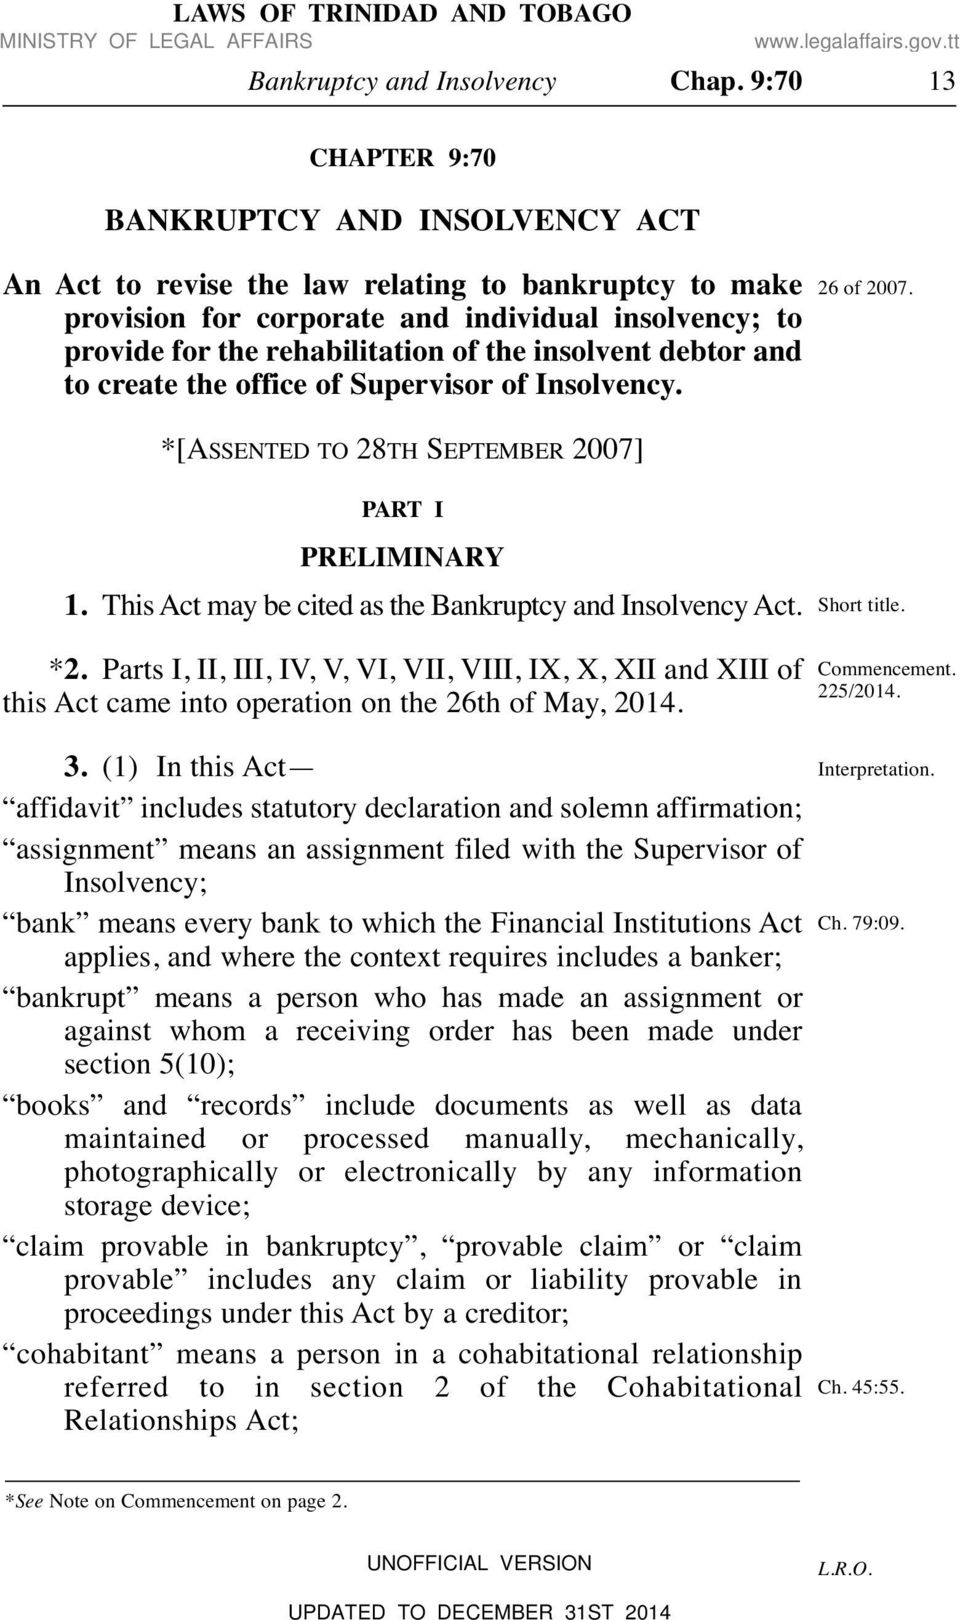 insolvent debtor and to create the office of Supervisor of Insolvency. *[ASSENTED TO 28TH SEPTEMBER 2007] 26 of 2007. PART I PRELIMINARY 1. This Act may be cited as the Bankruptcy and Insolvency Act.